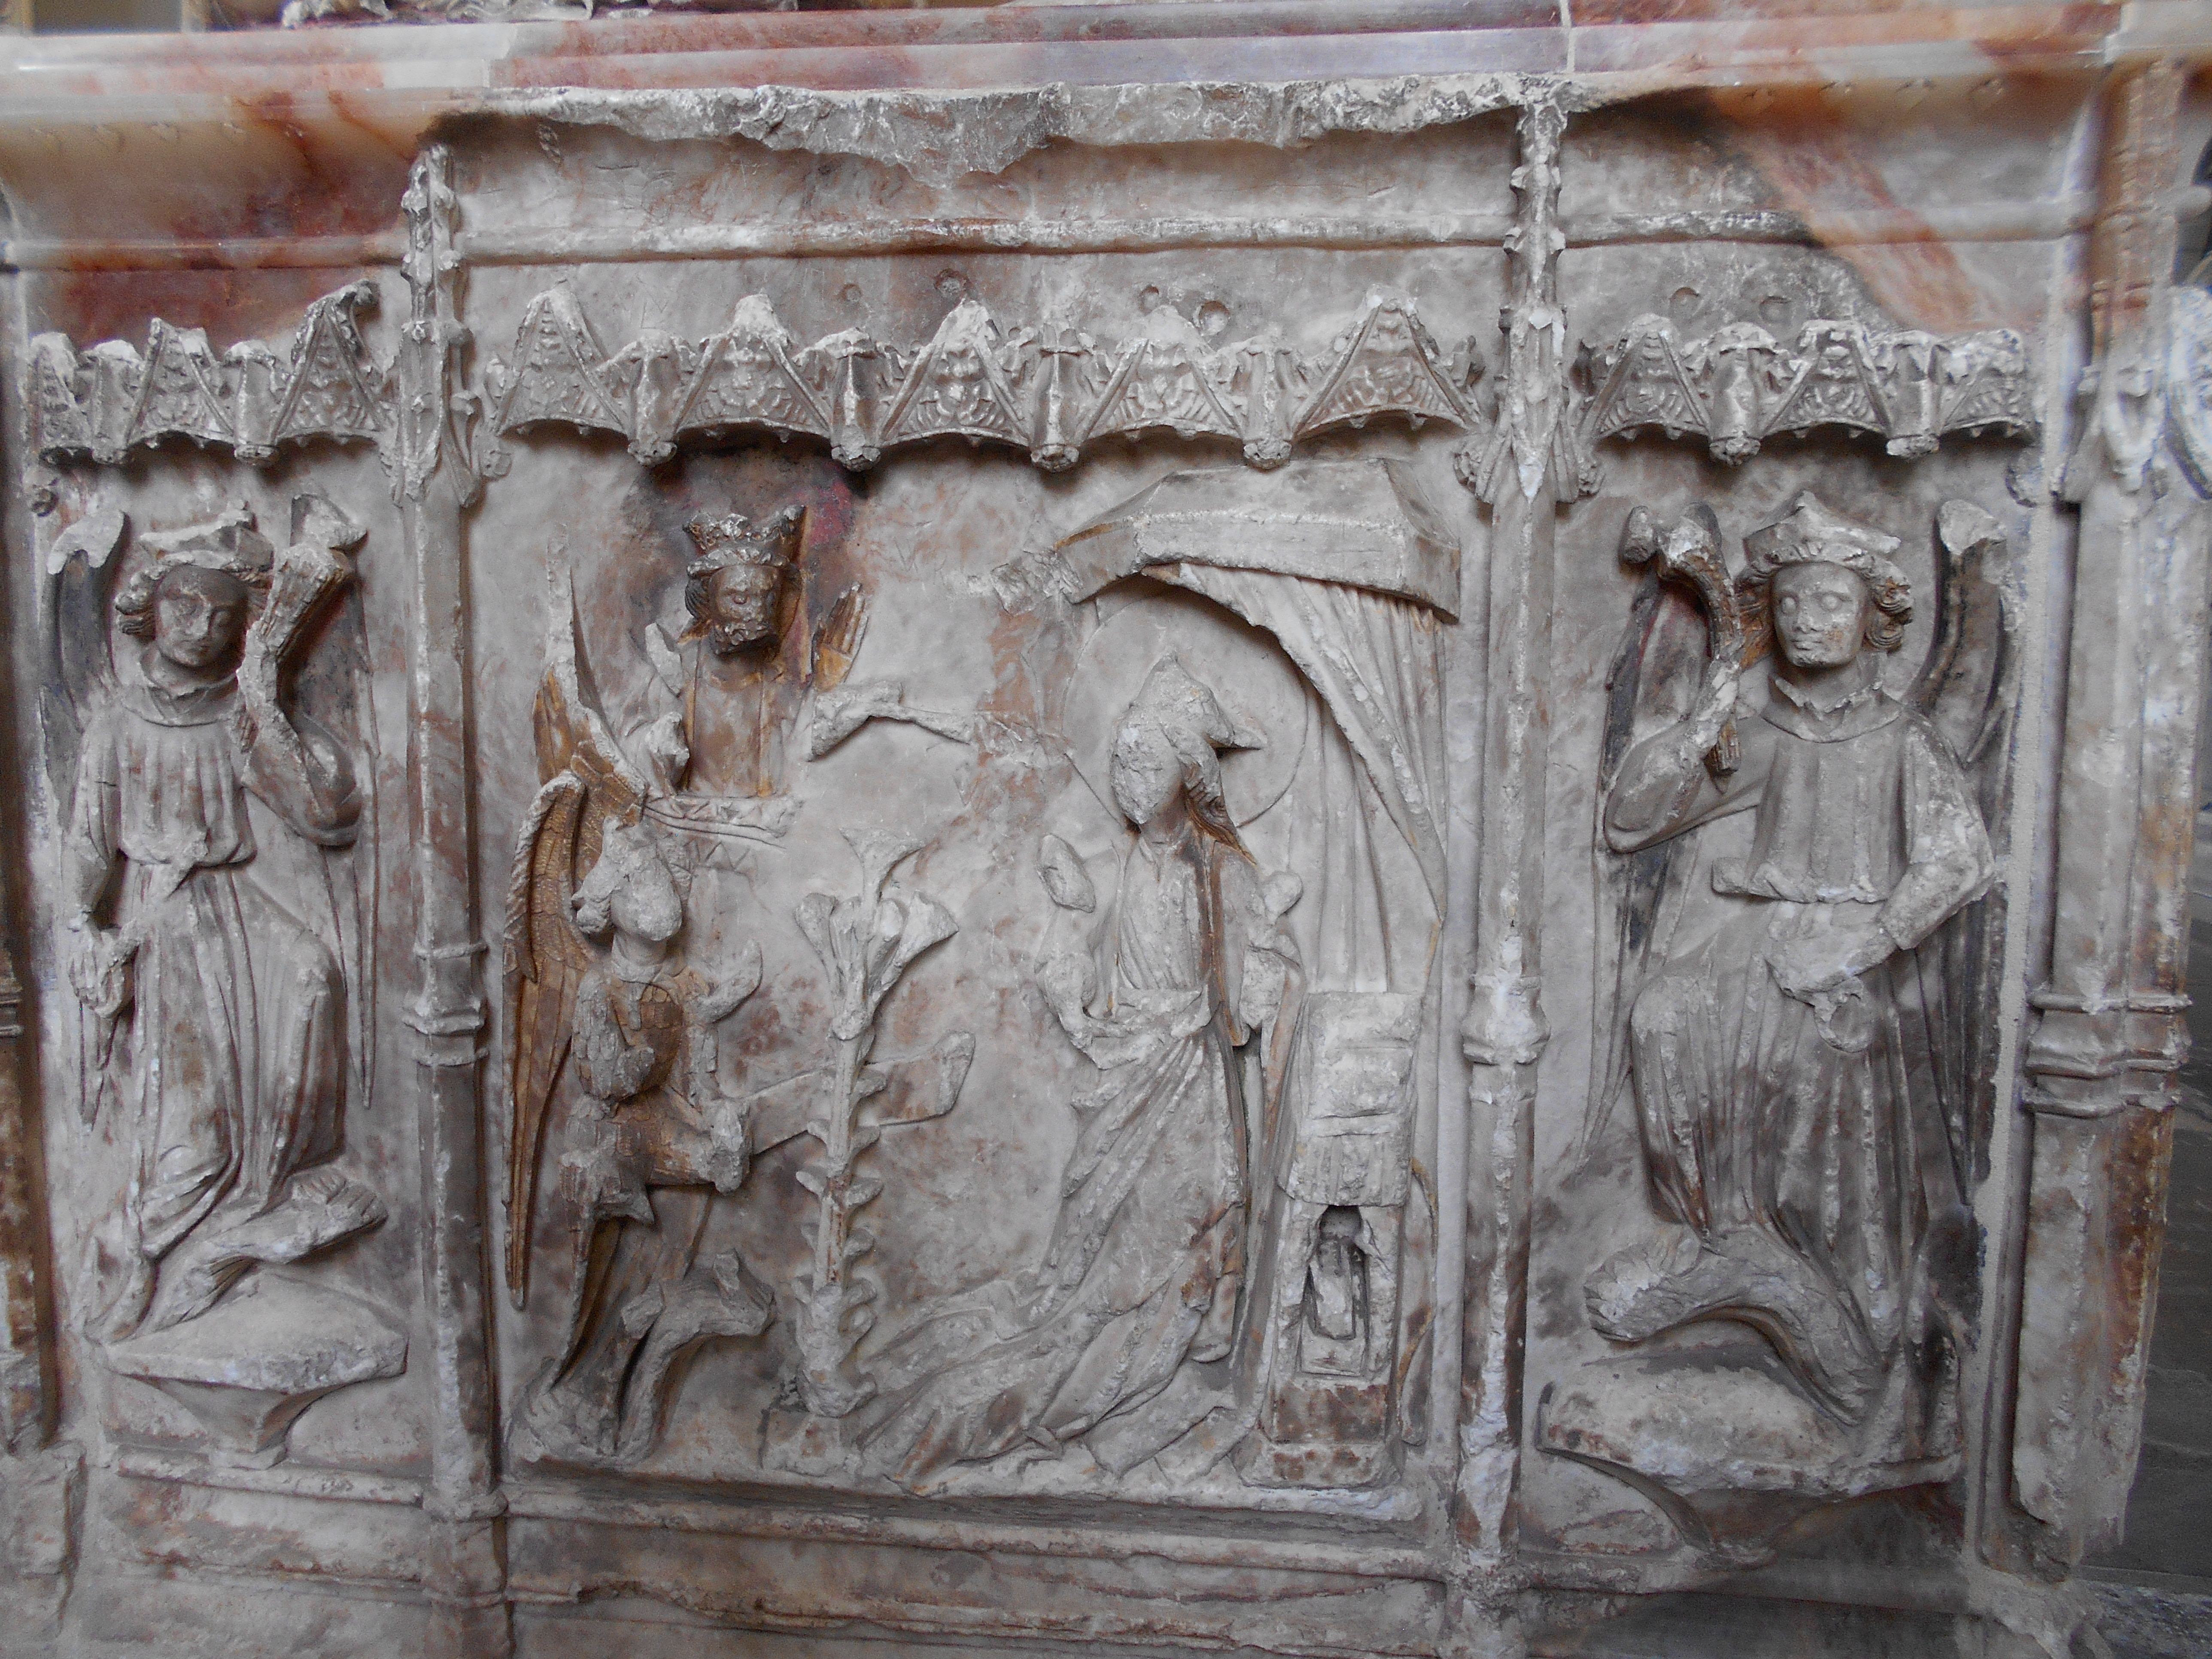 Carving of the annunciation